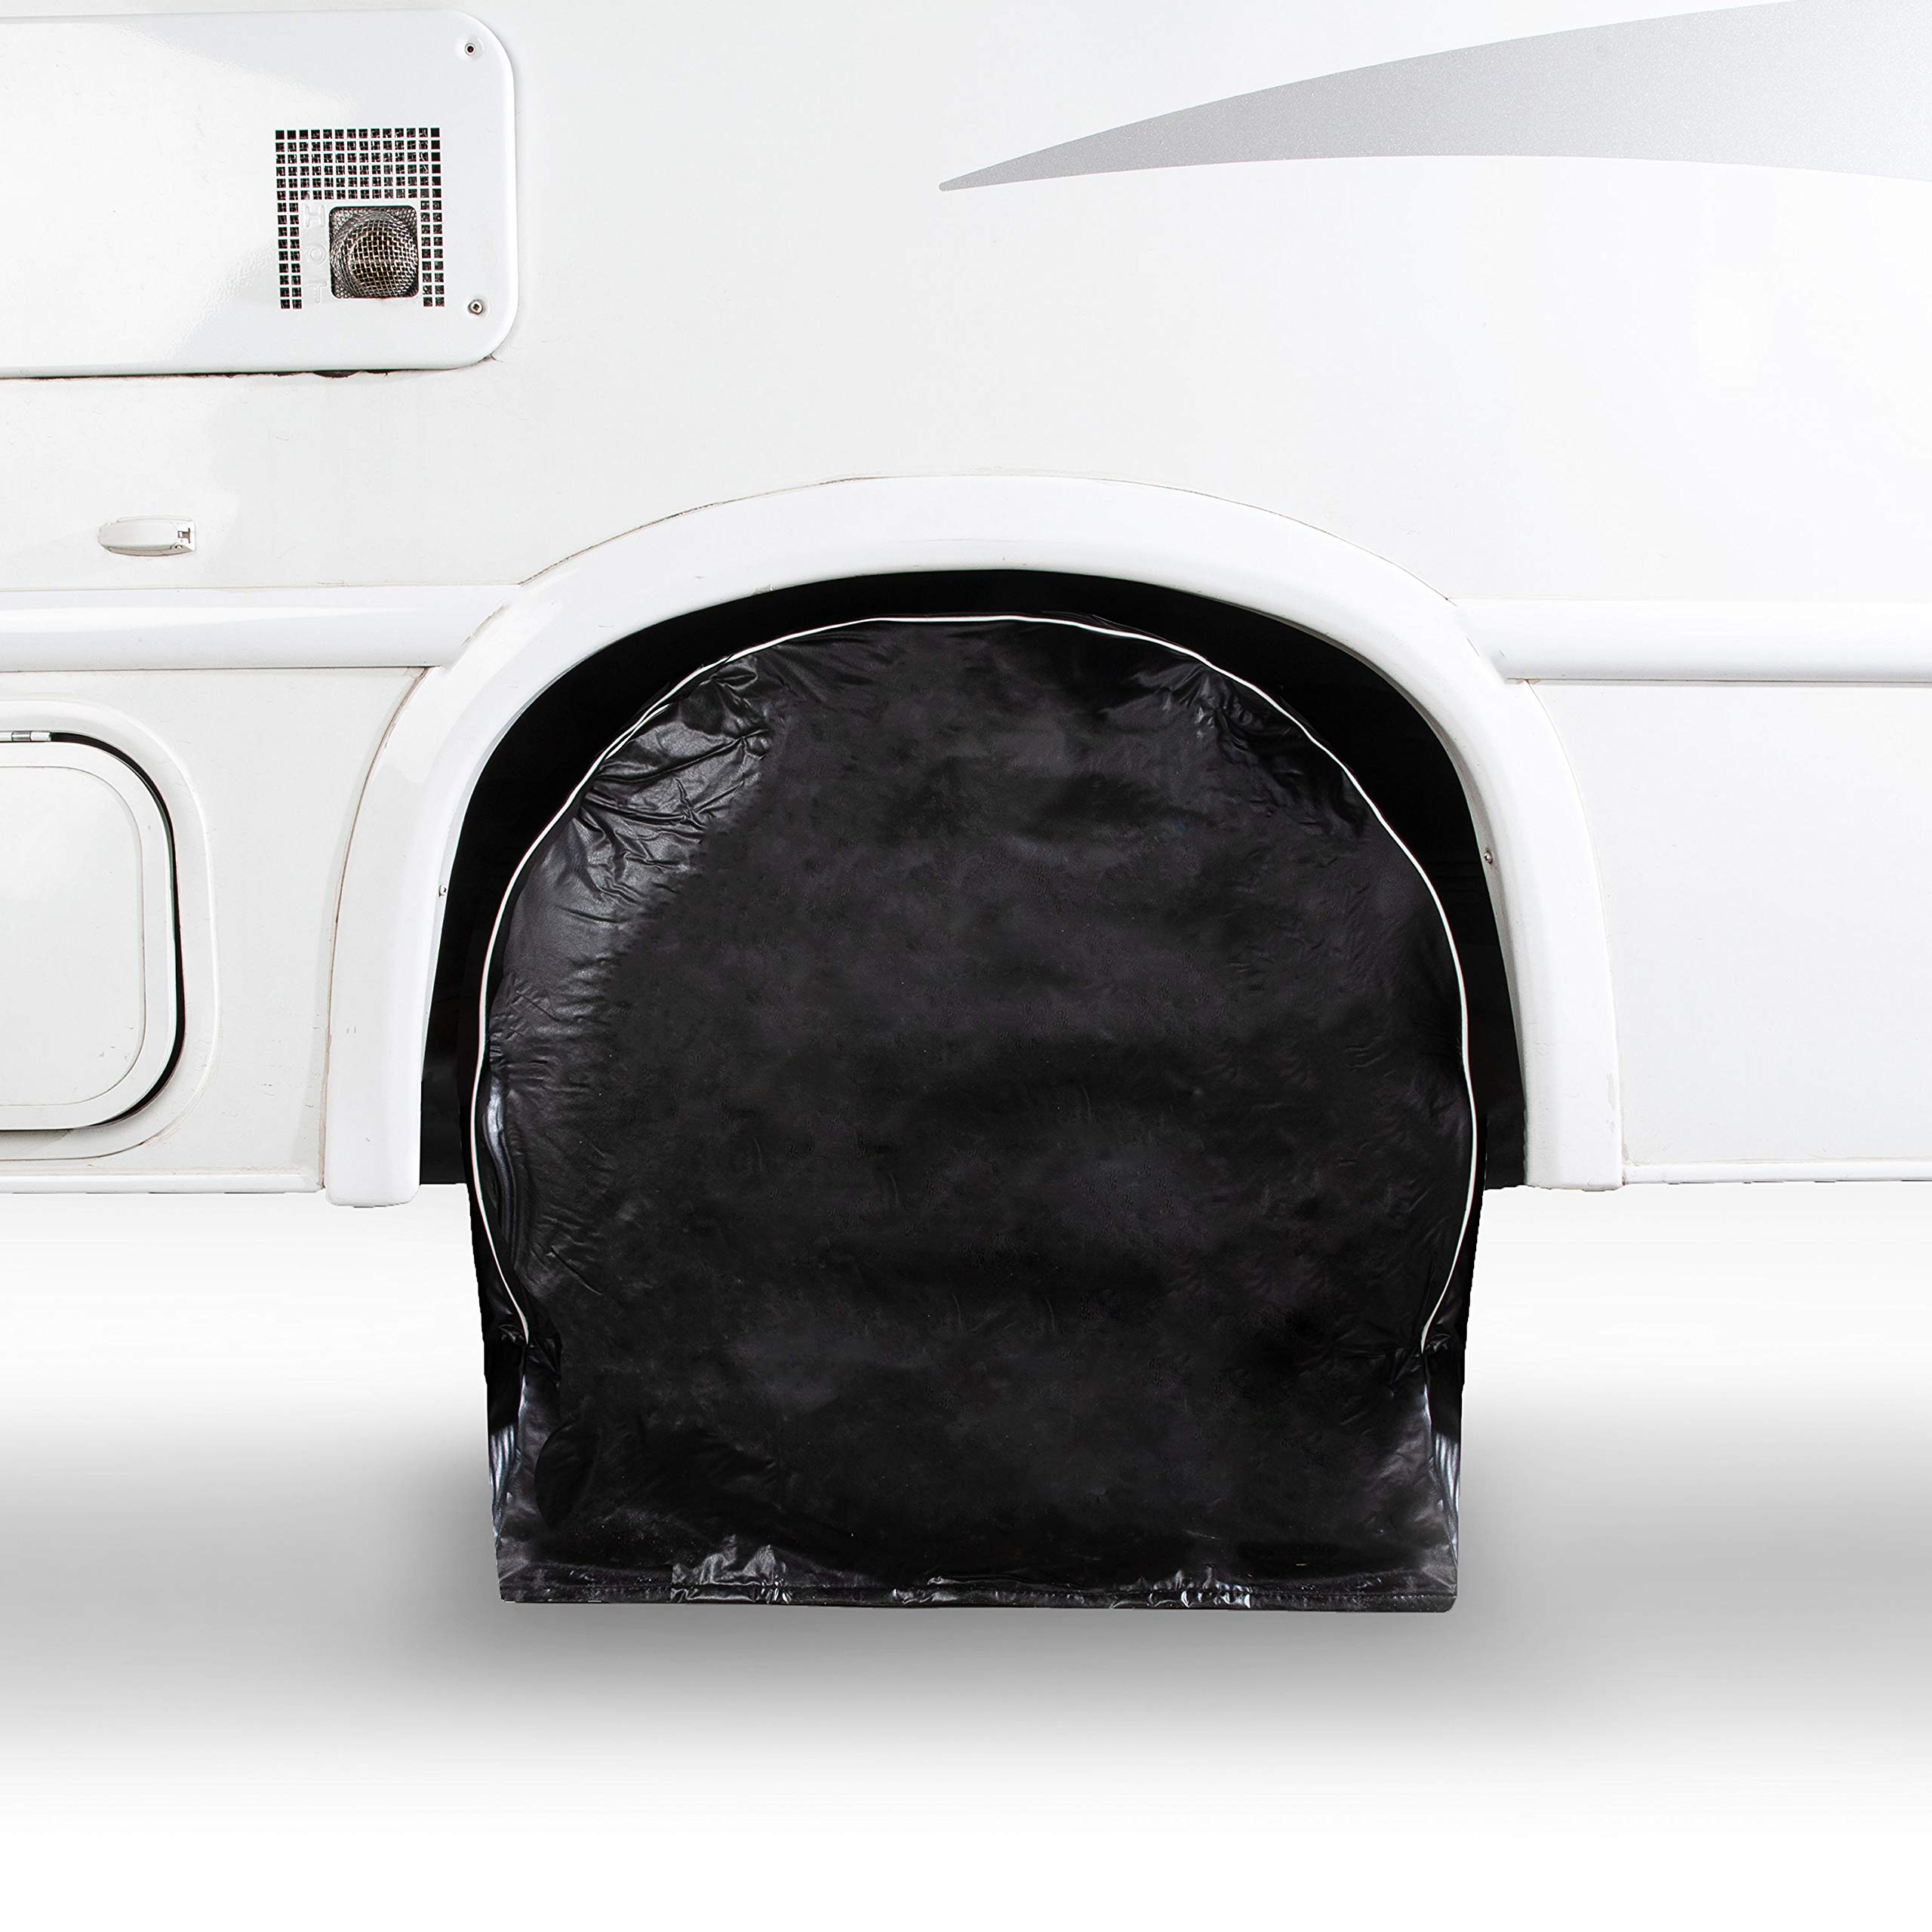 HJO Products Set of 4 Wheel Tire Covers - Black Vinyl Waterproof UV Protective RV, Trailer, Camper, Truck Tire Protectors, Fits 27'' to 29'' Diameter – Premium Heavy Duty Protection for Your Tires